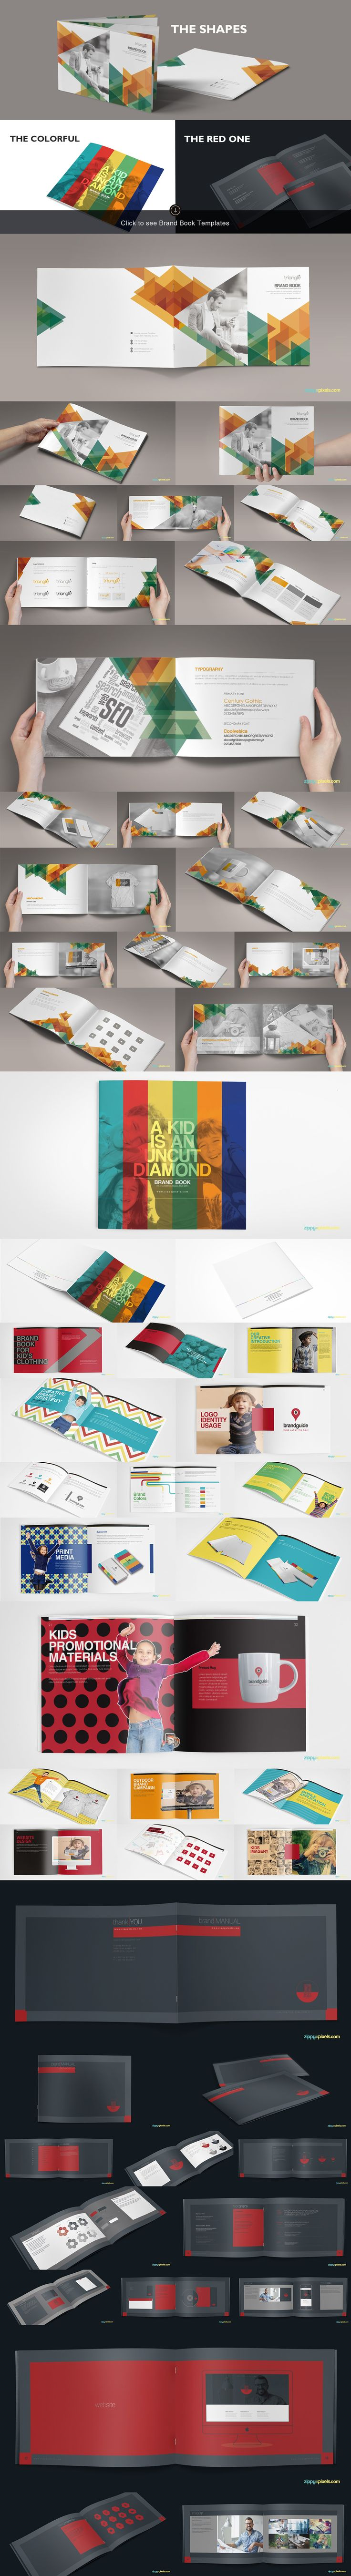 13 Brand Guidelines Templates Bundle by ZippyPixels on Creative Market